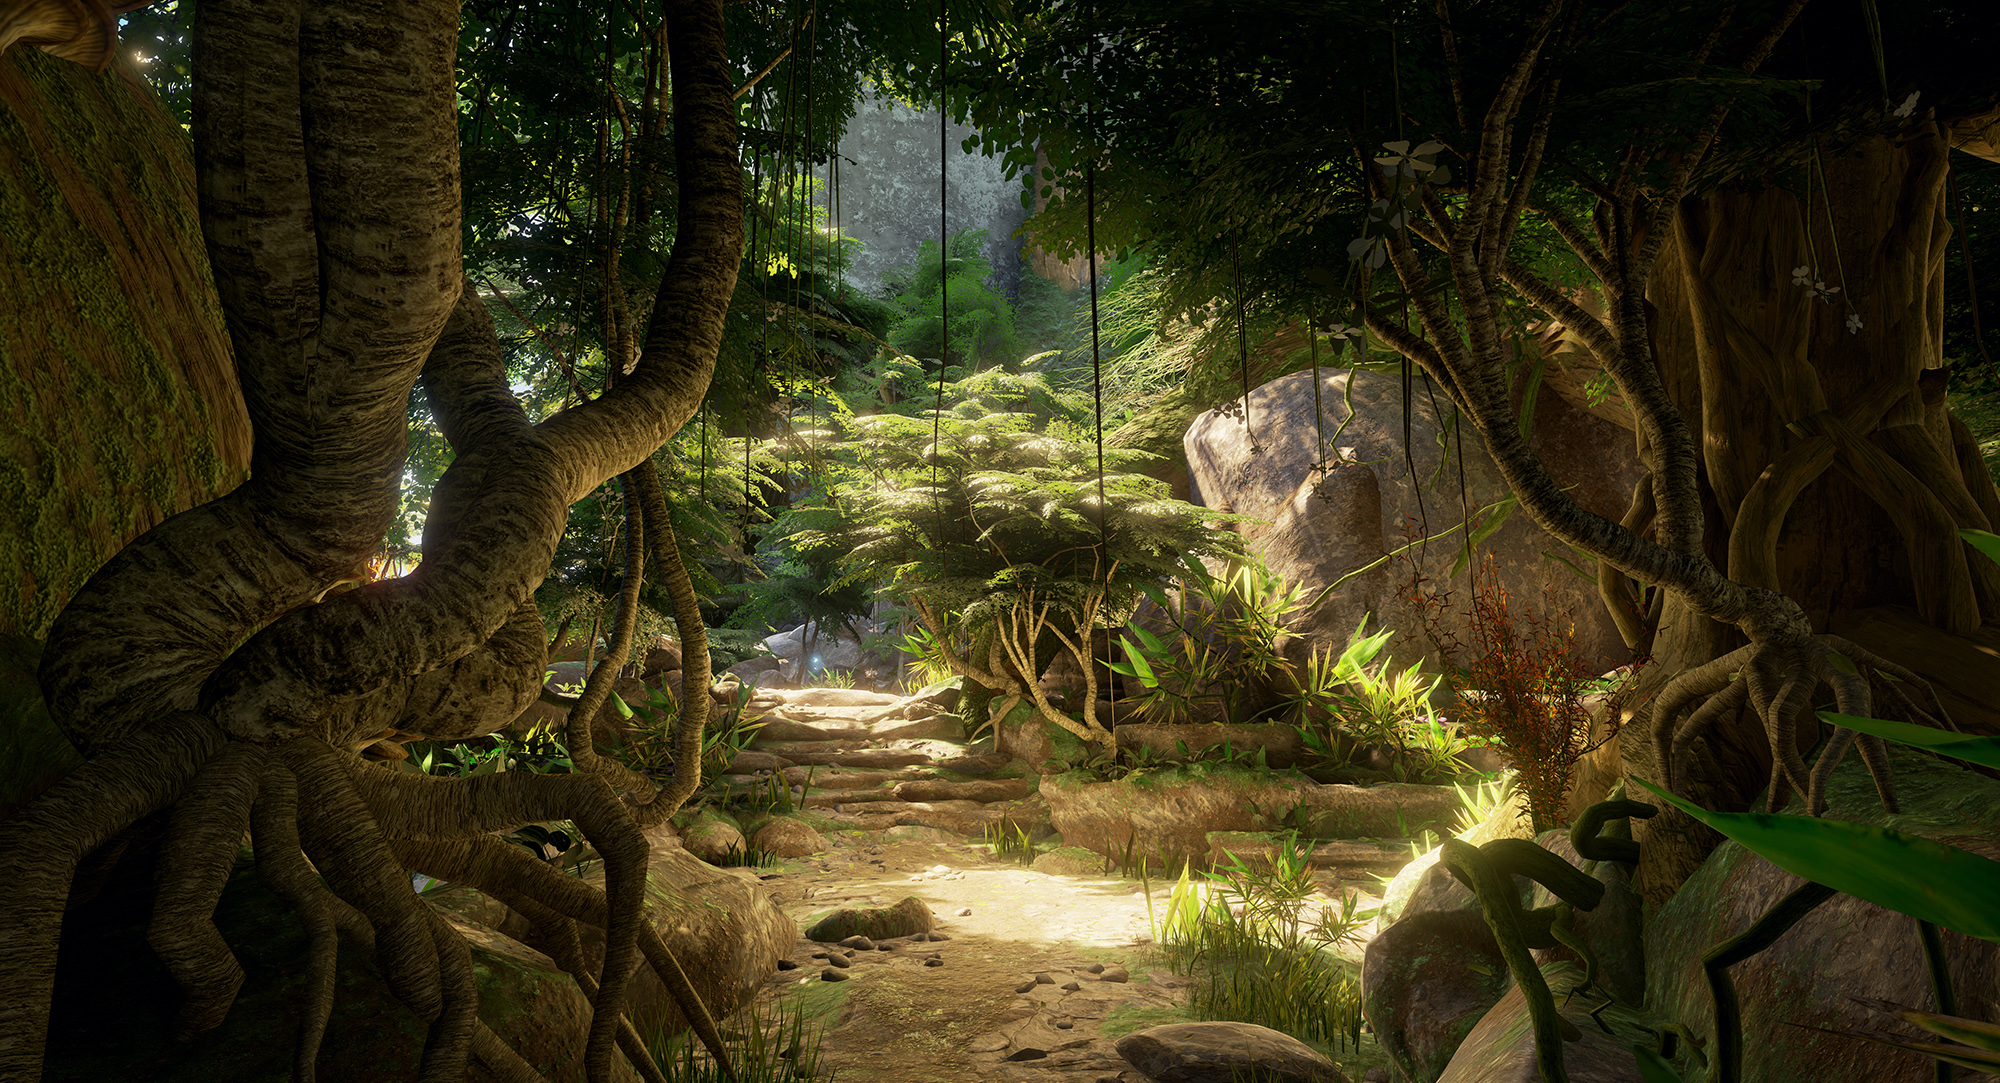 Htc One 3d Wallpaper Obduction Is A Beautiful Virtual World That Shows The